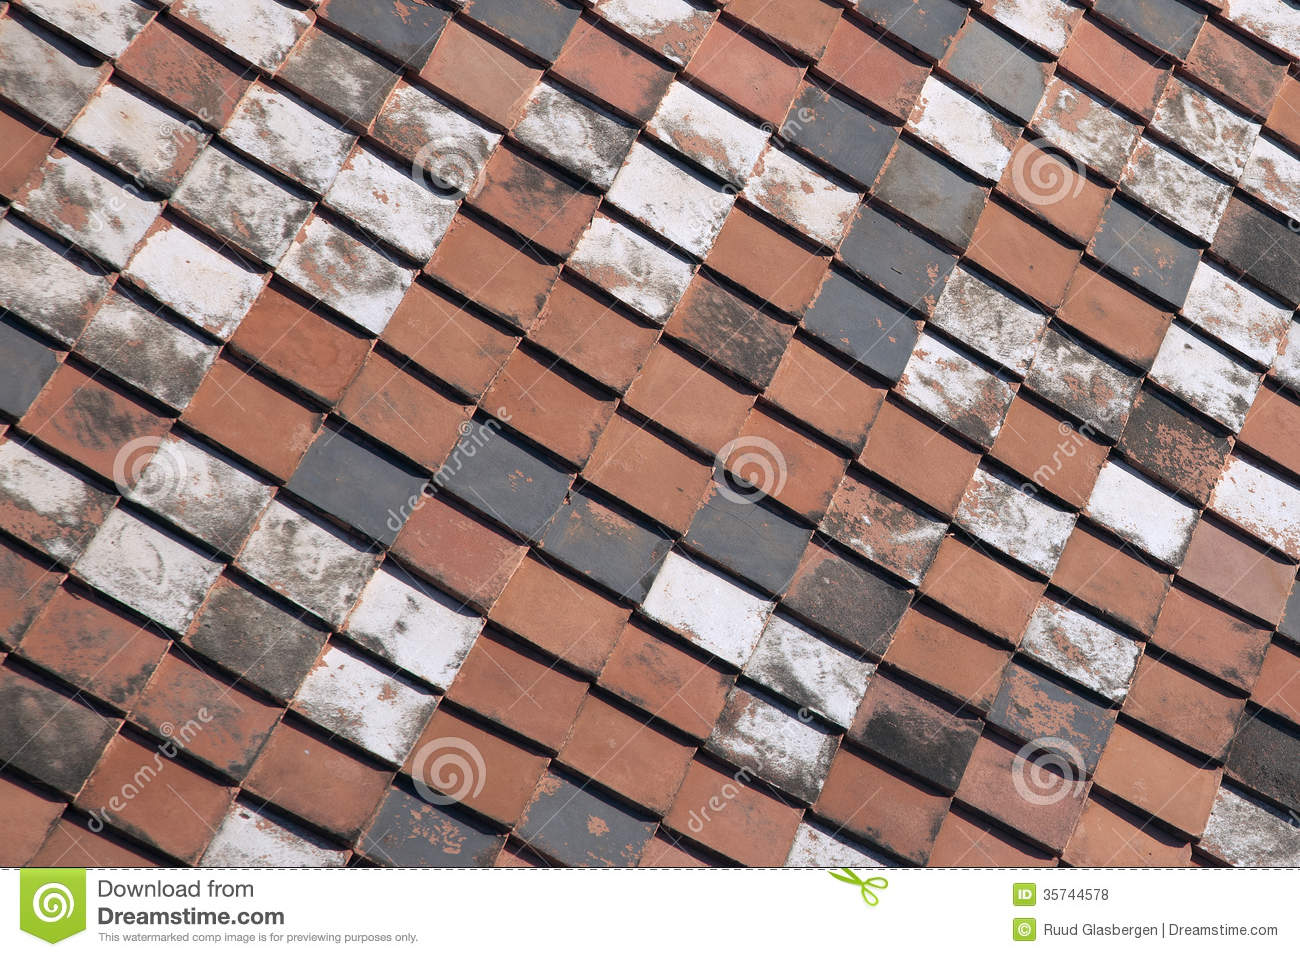 10 install the 1 piece s tile or claylite roof tiles roof